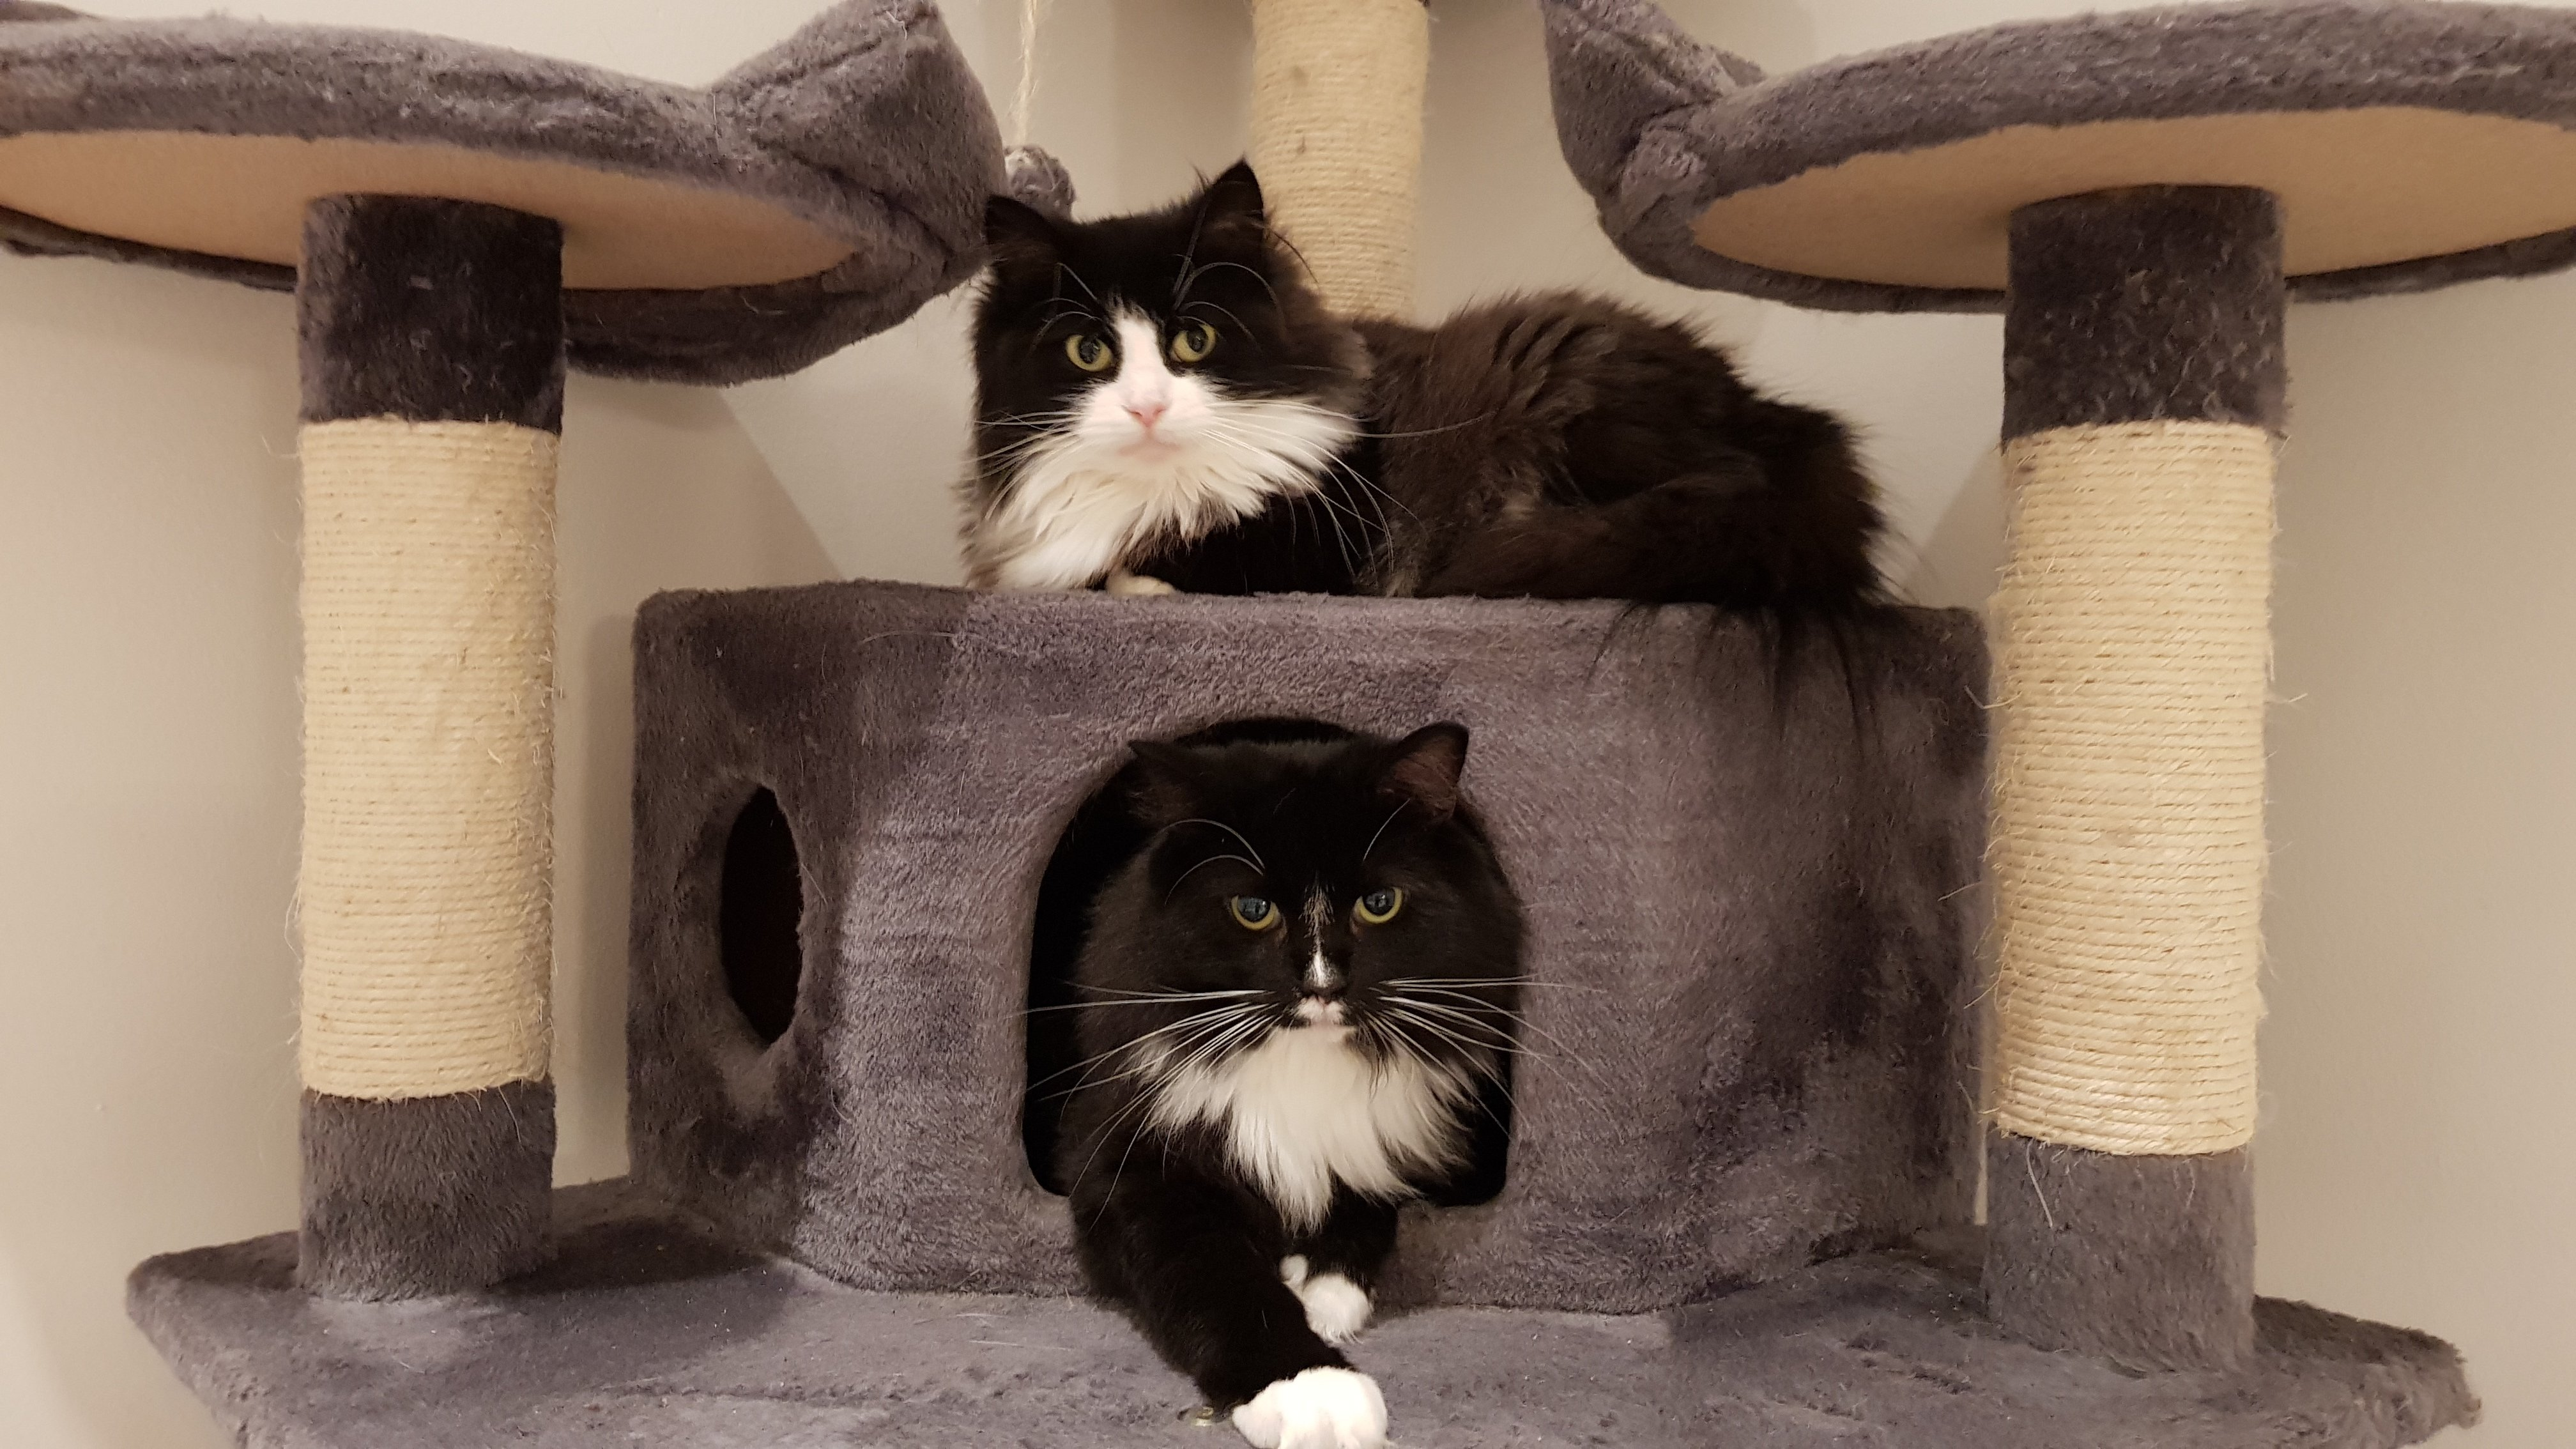 Black and white cats relaxing